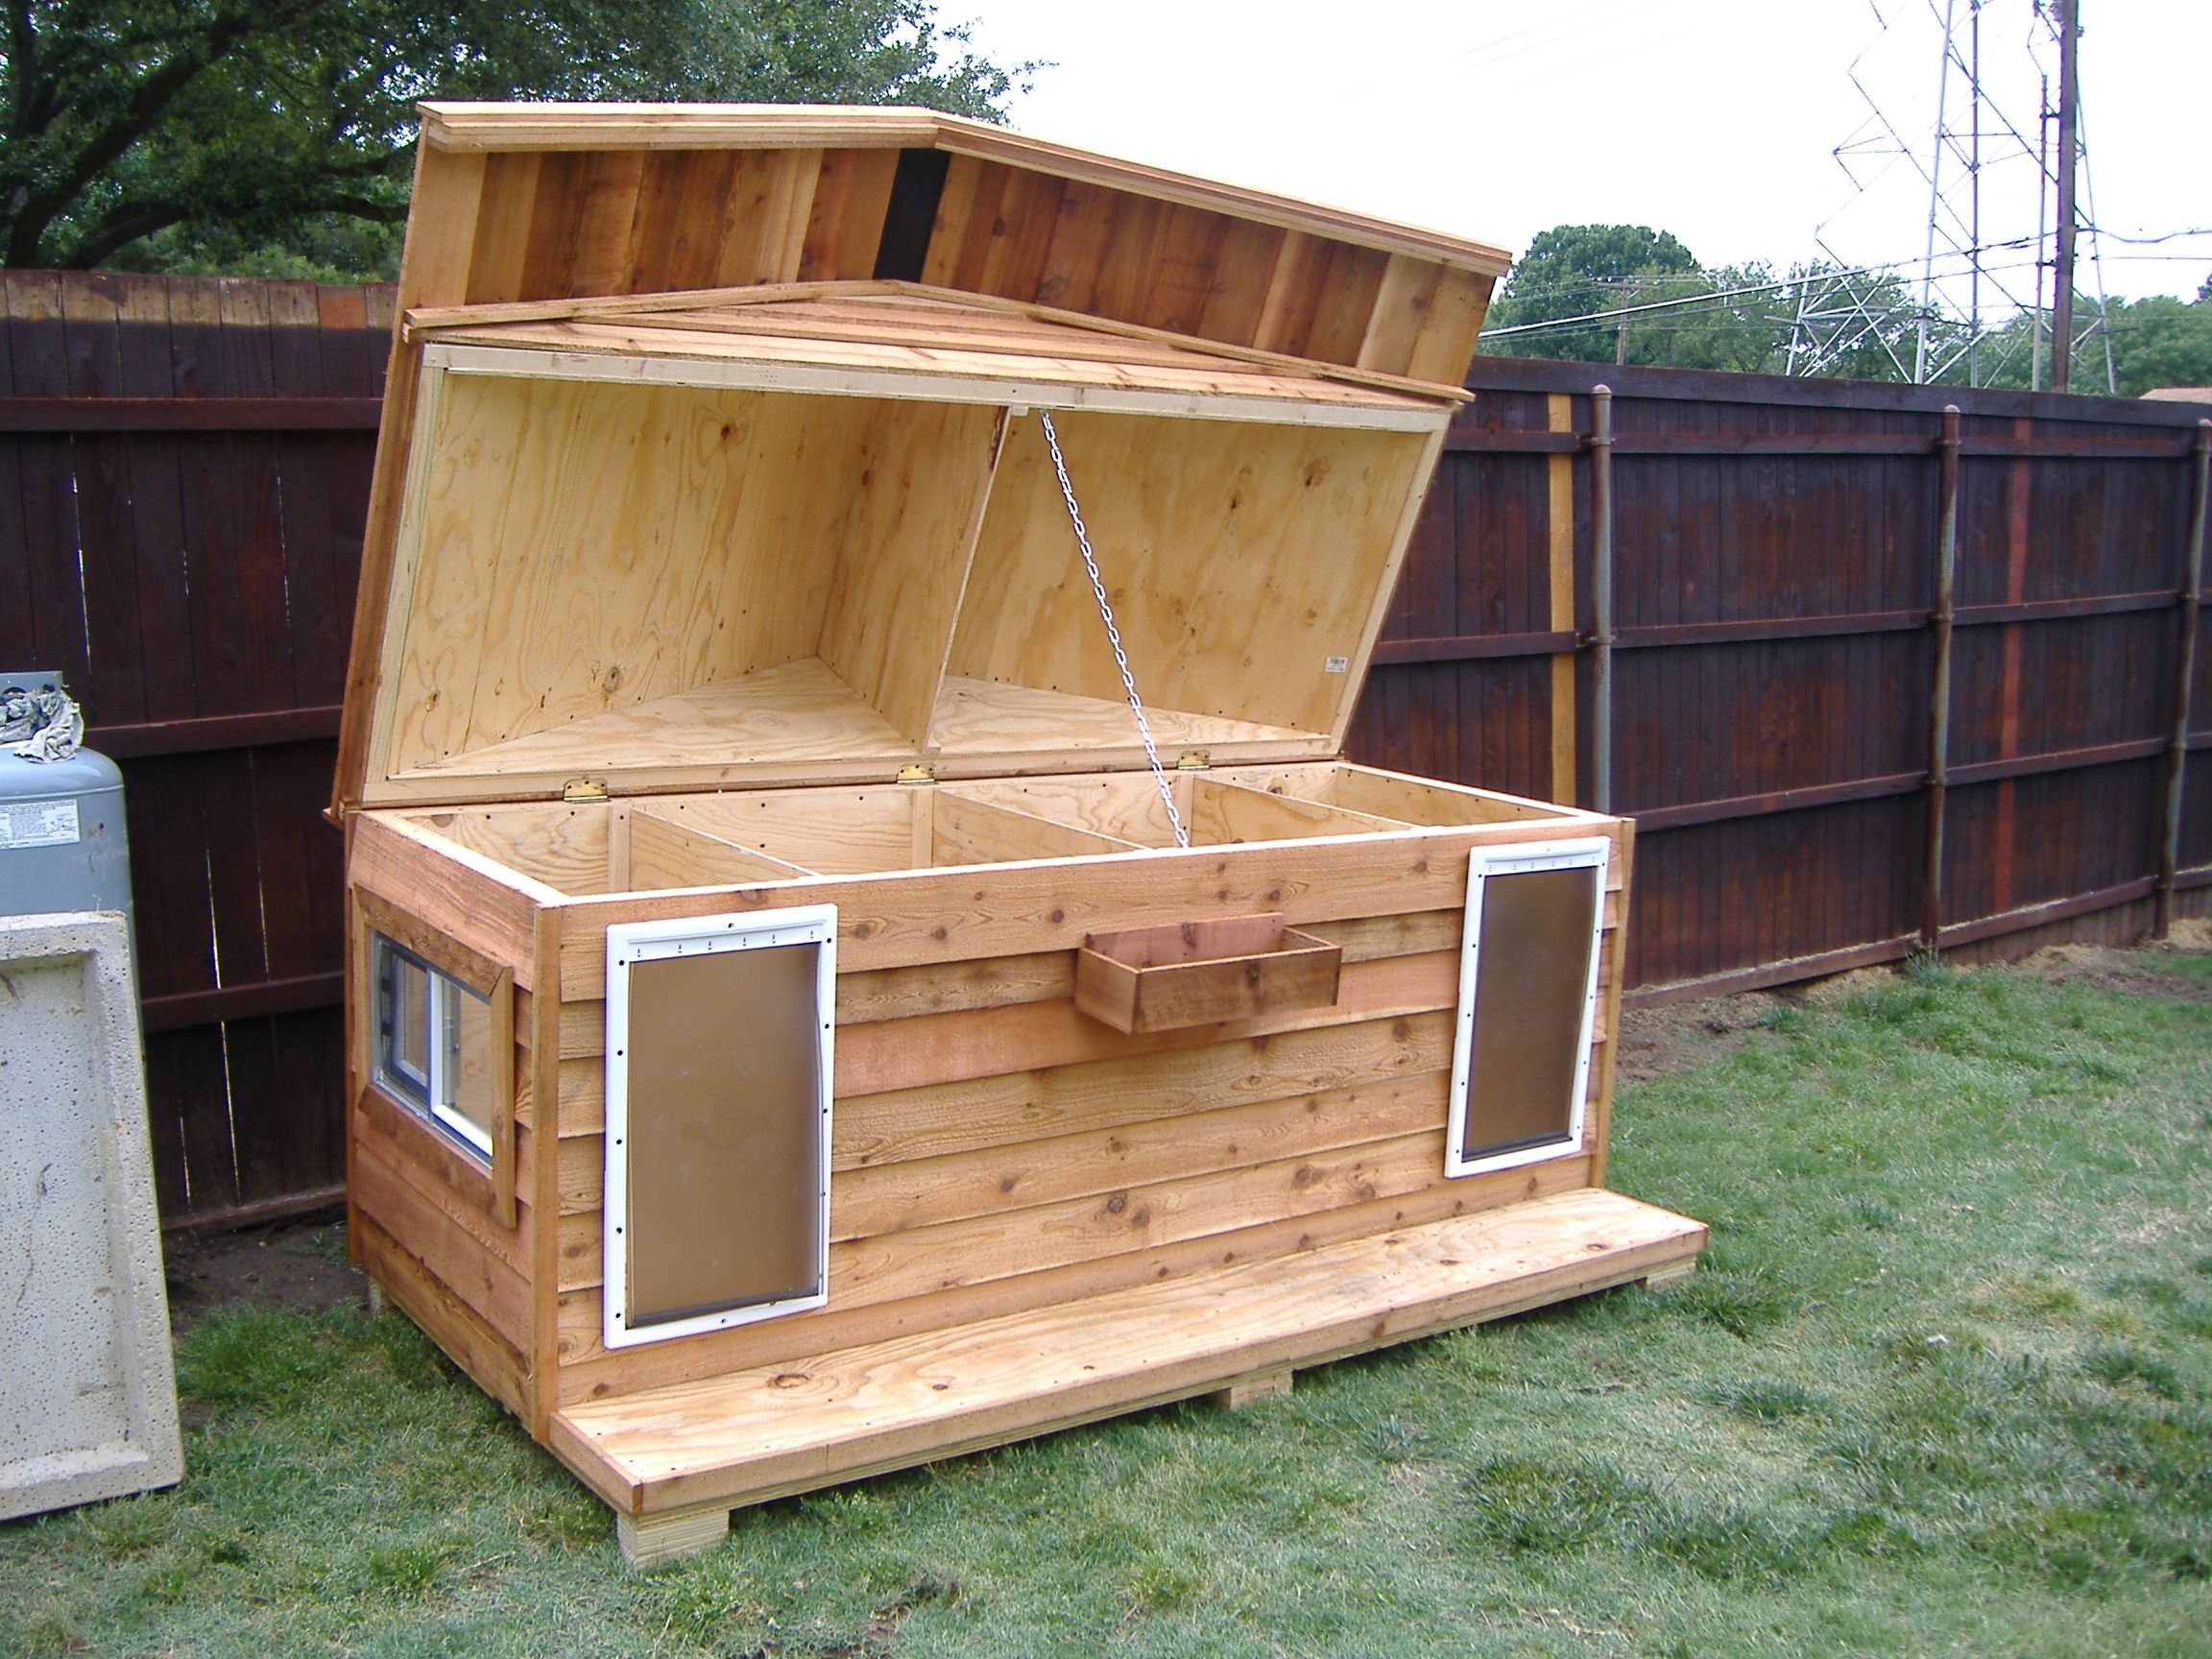 17 Best ideas about Large Dog House on Pinterest Dog houses